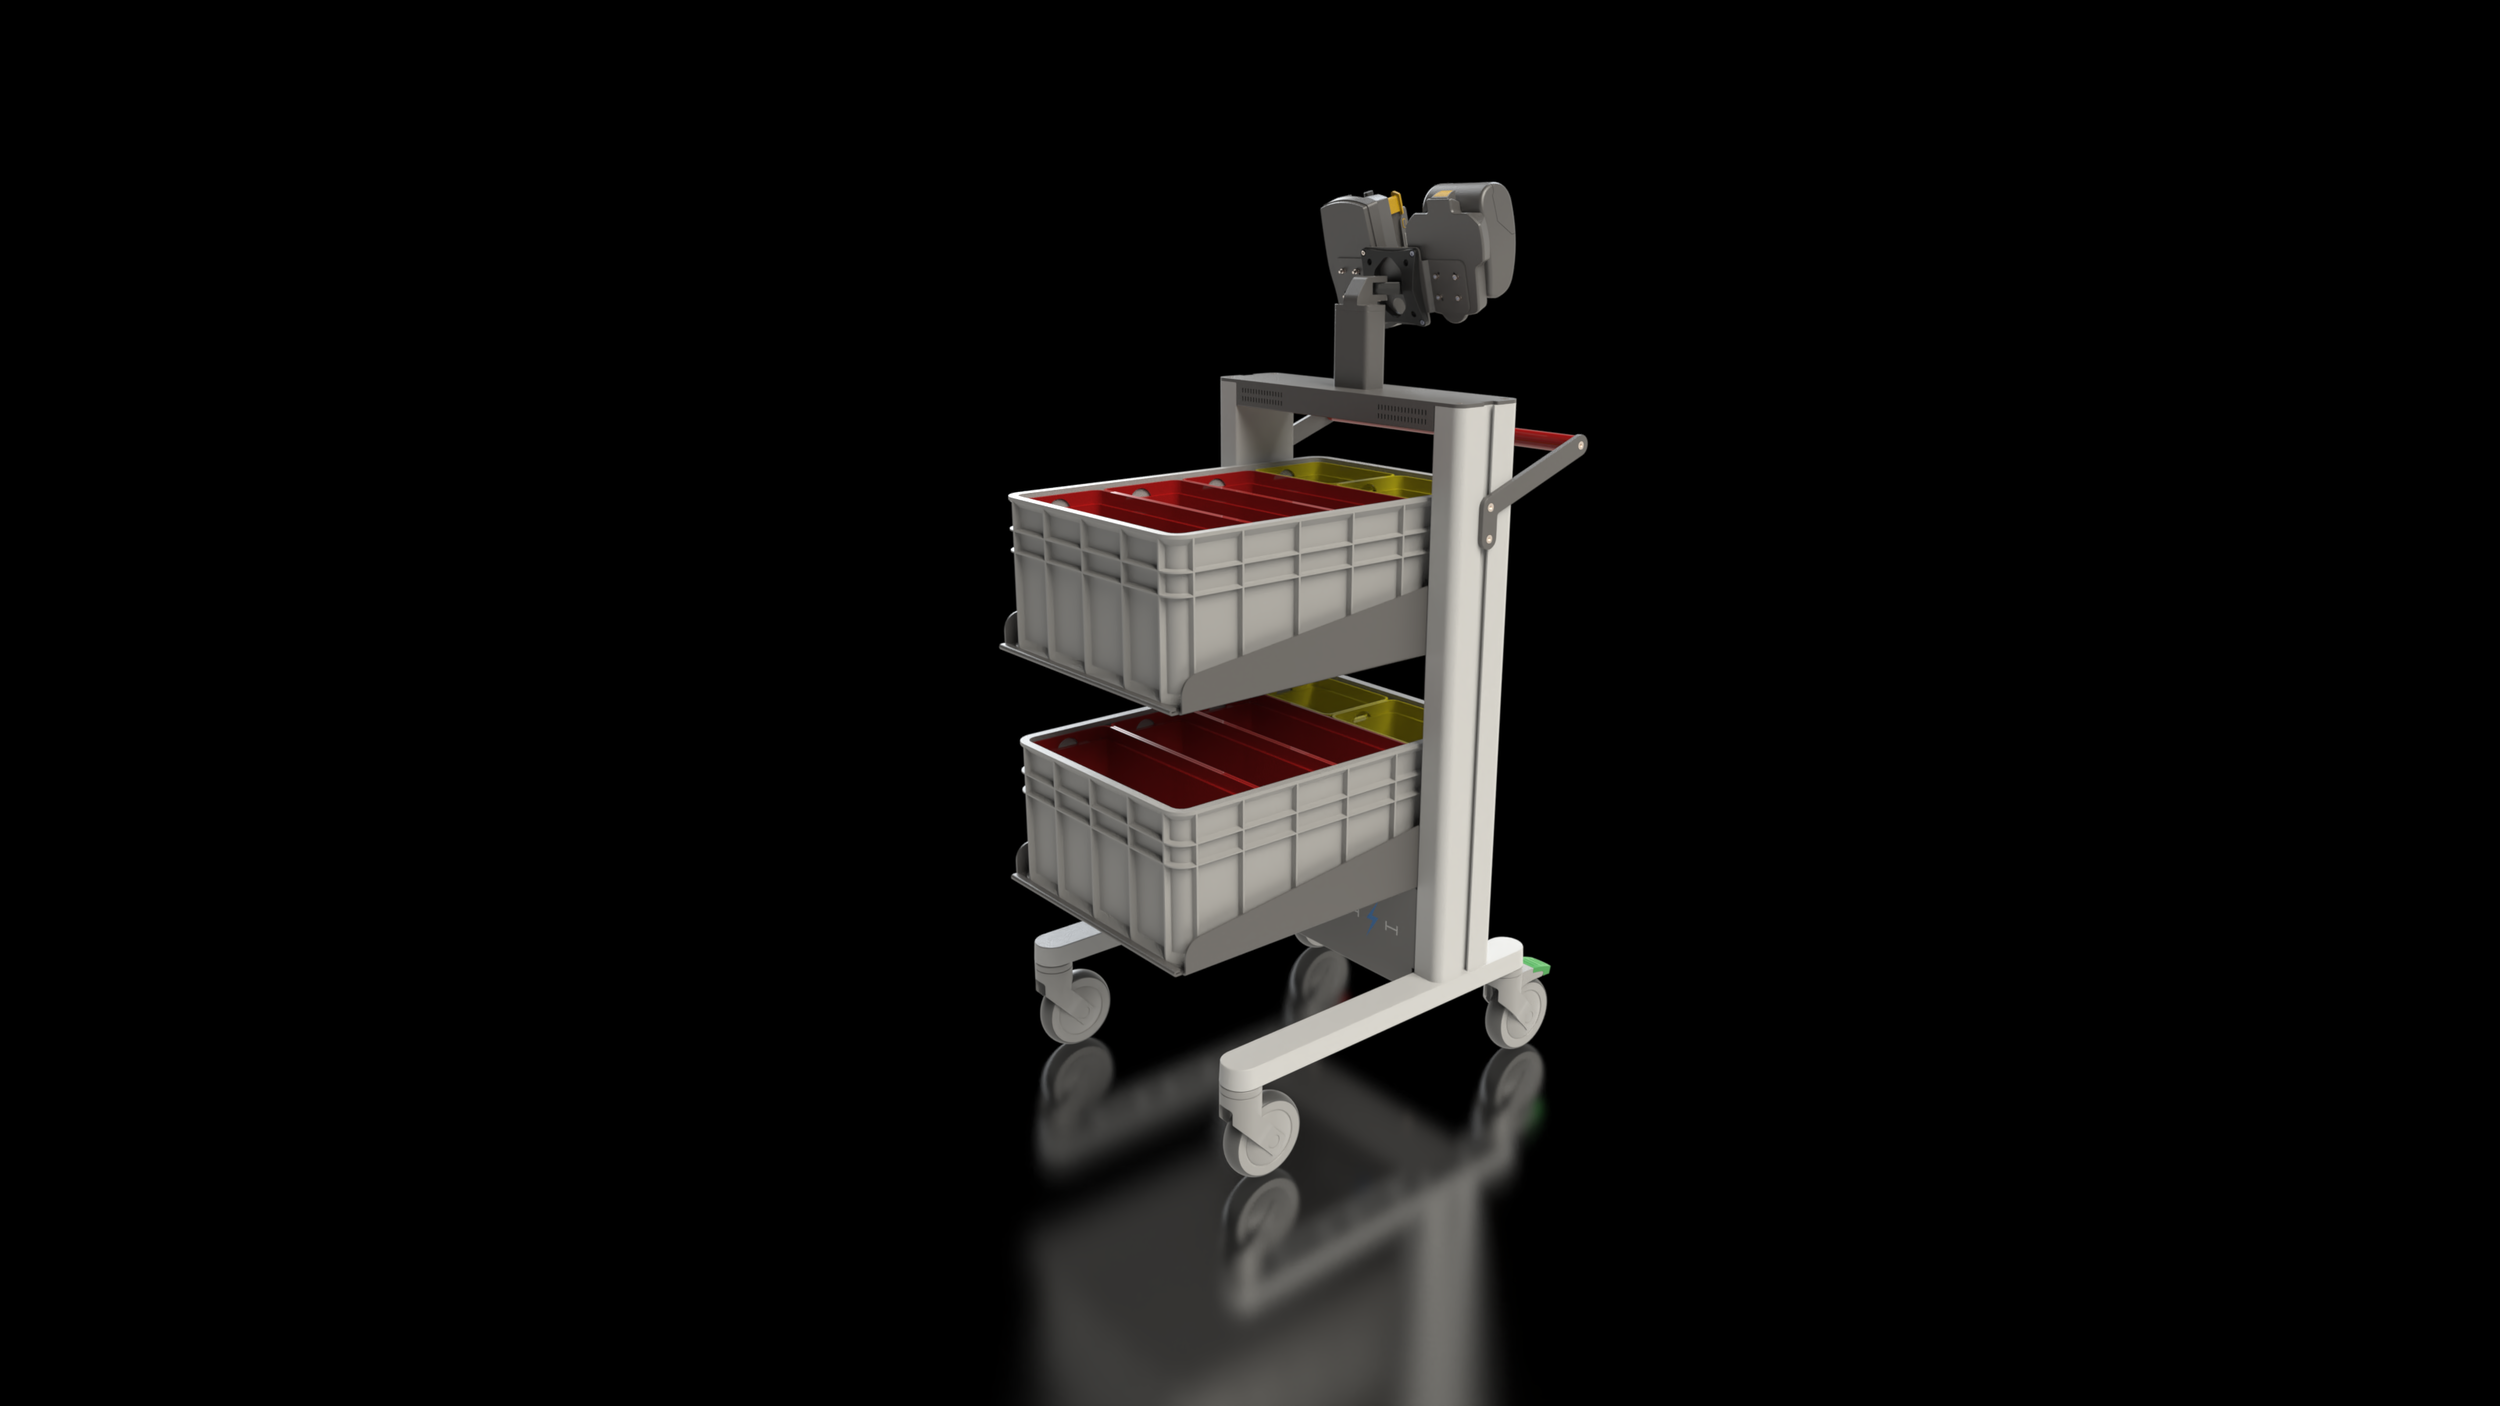 order-picking-cart-fulfillment-cart